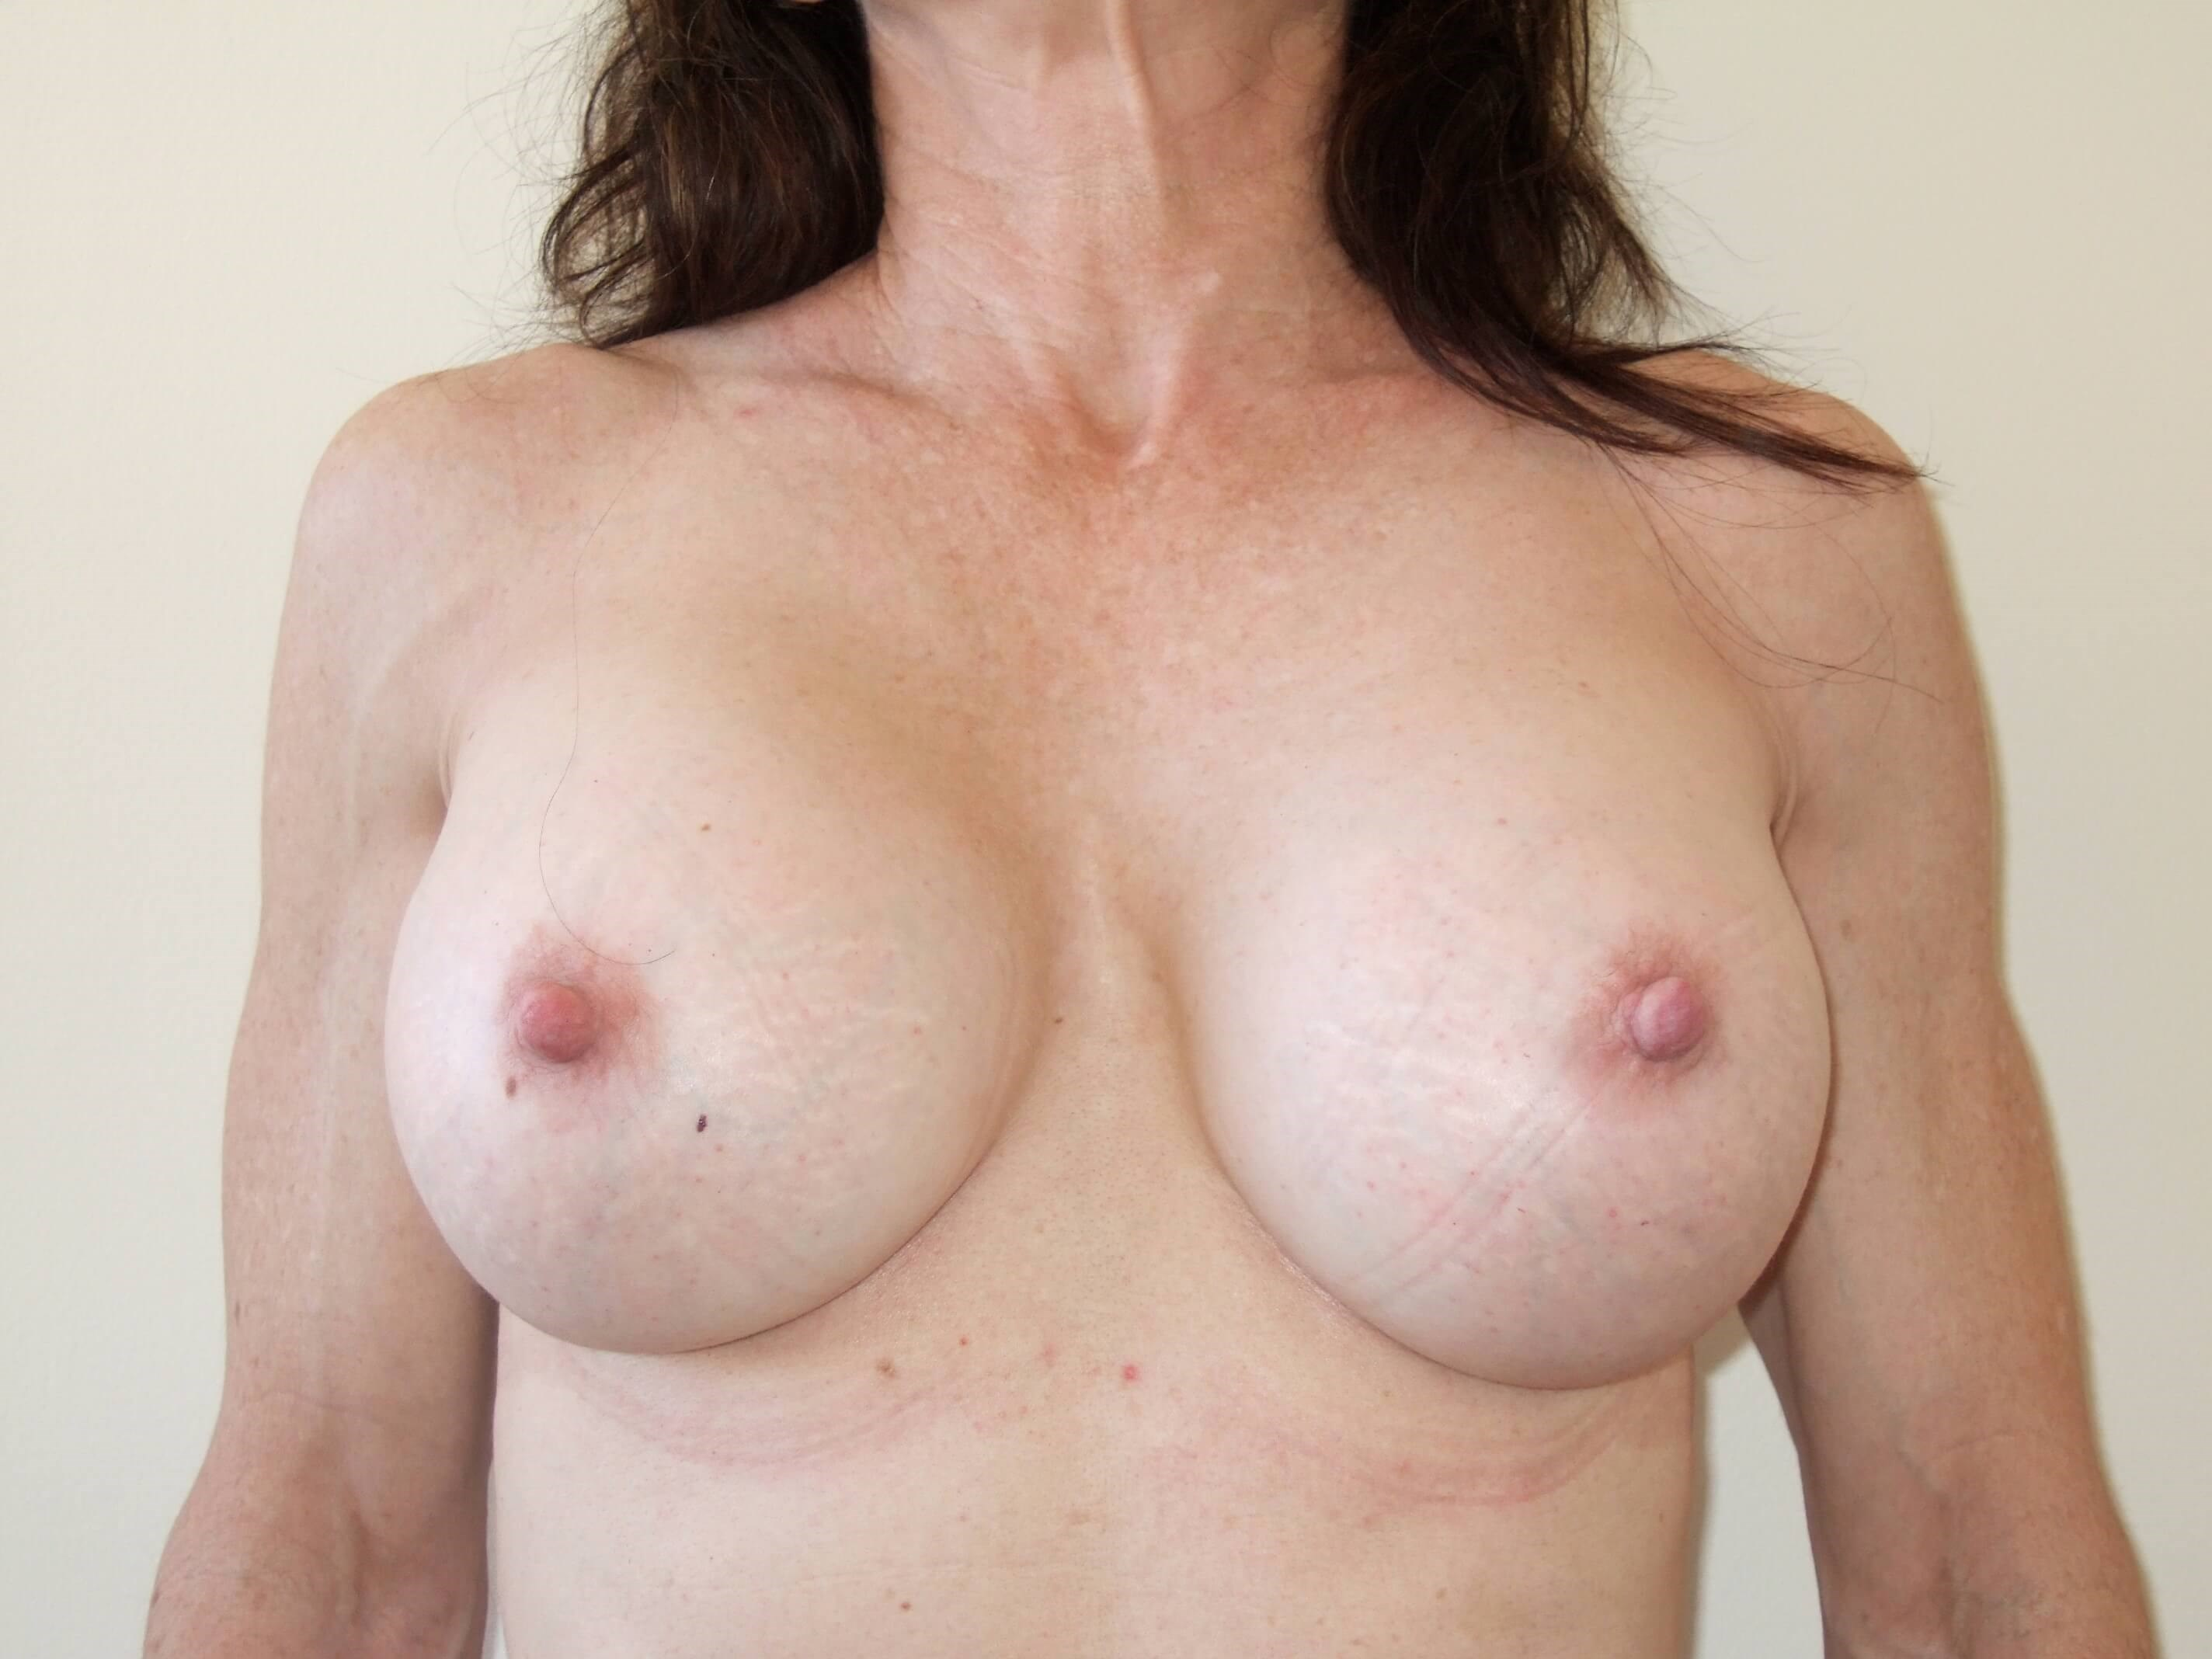 Capsular Contracture Repair After Capsulectomy